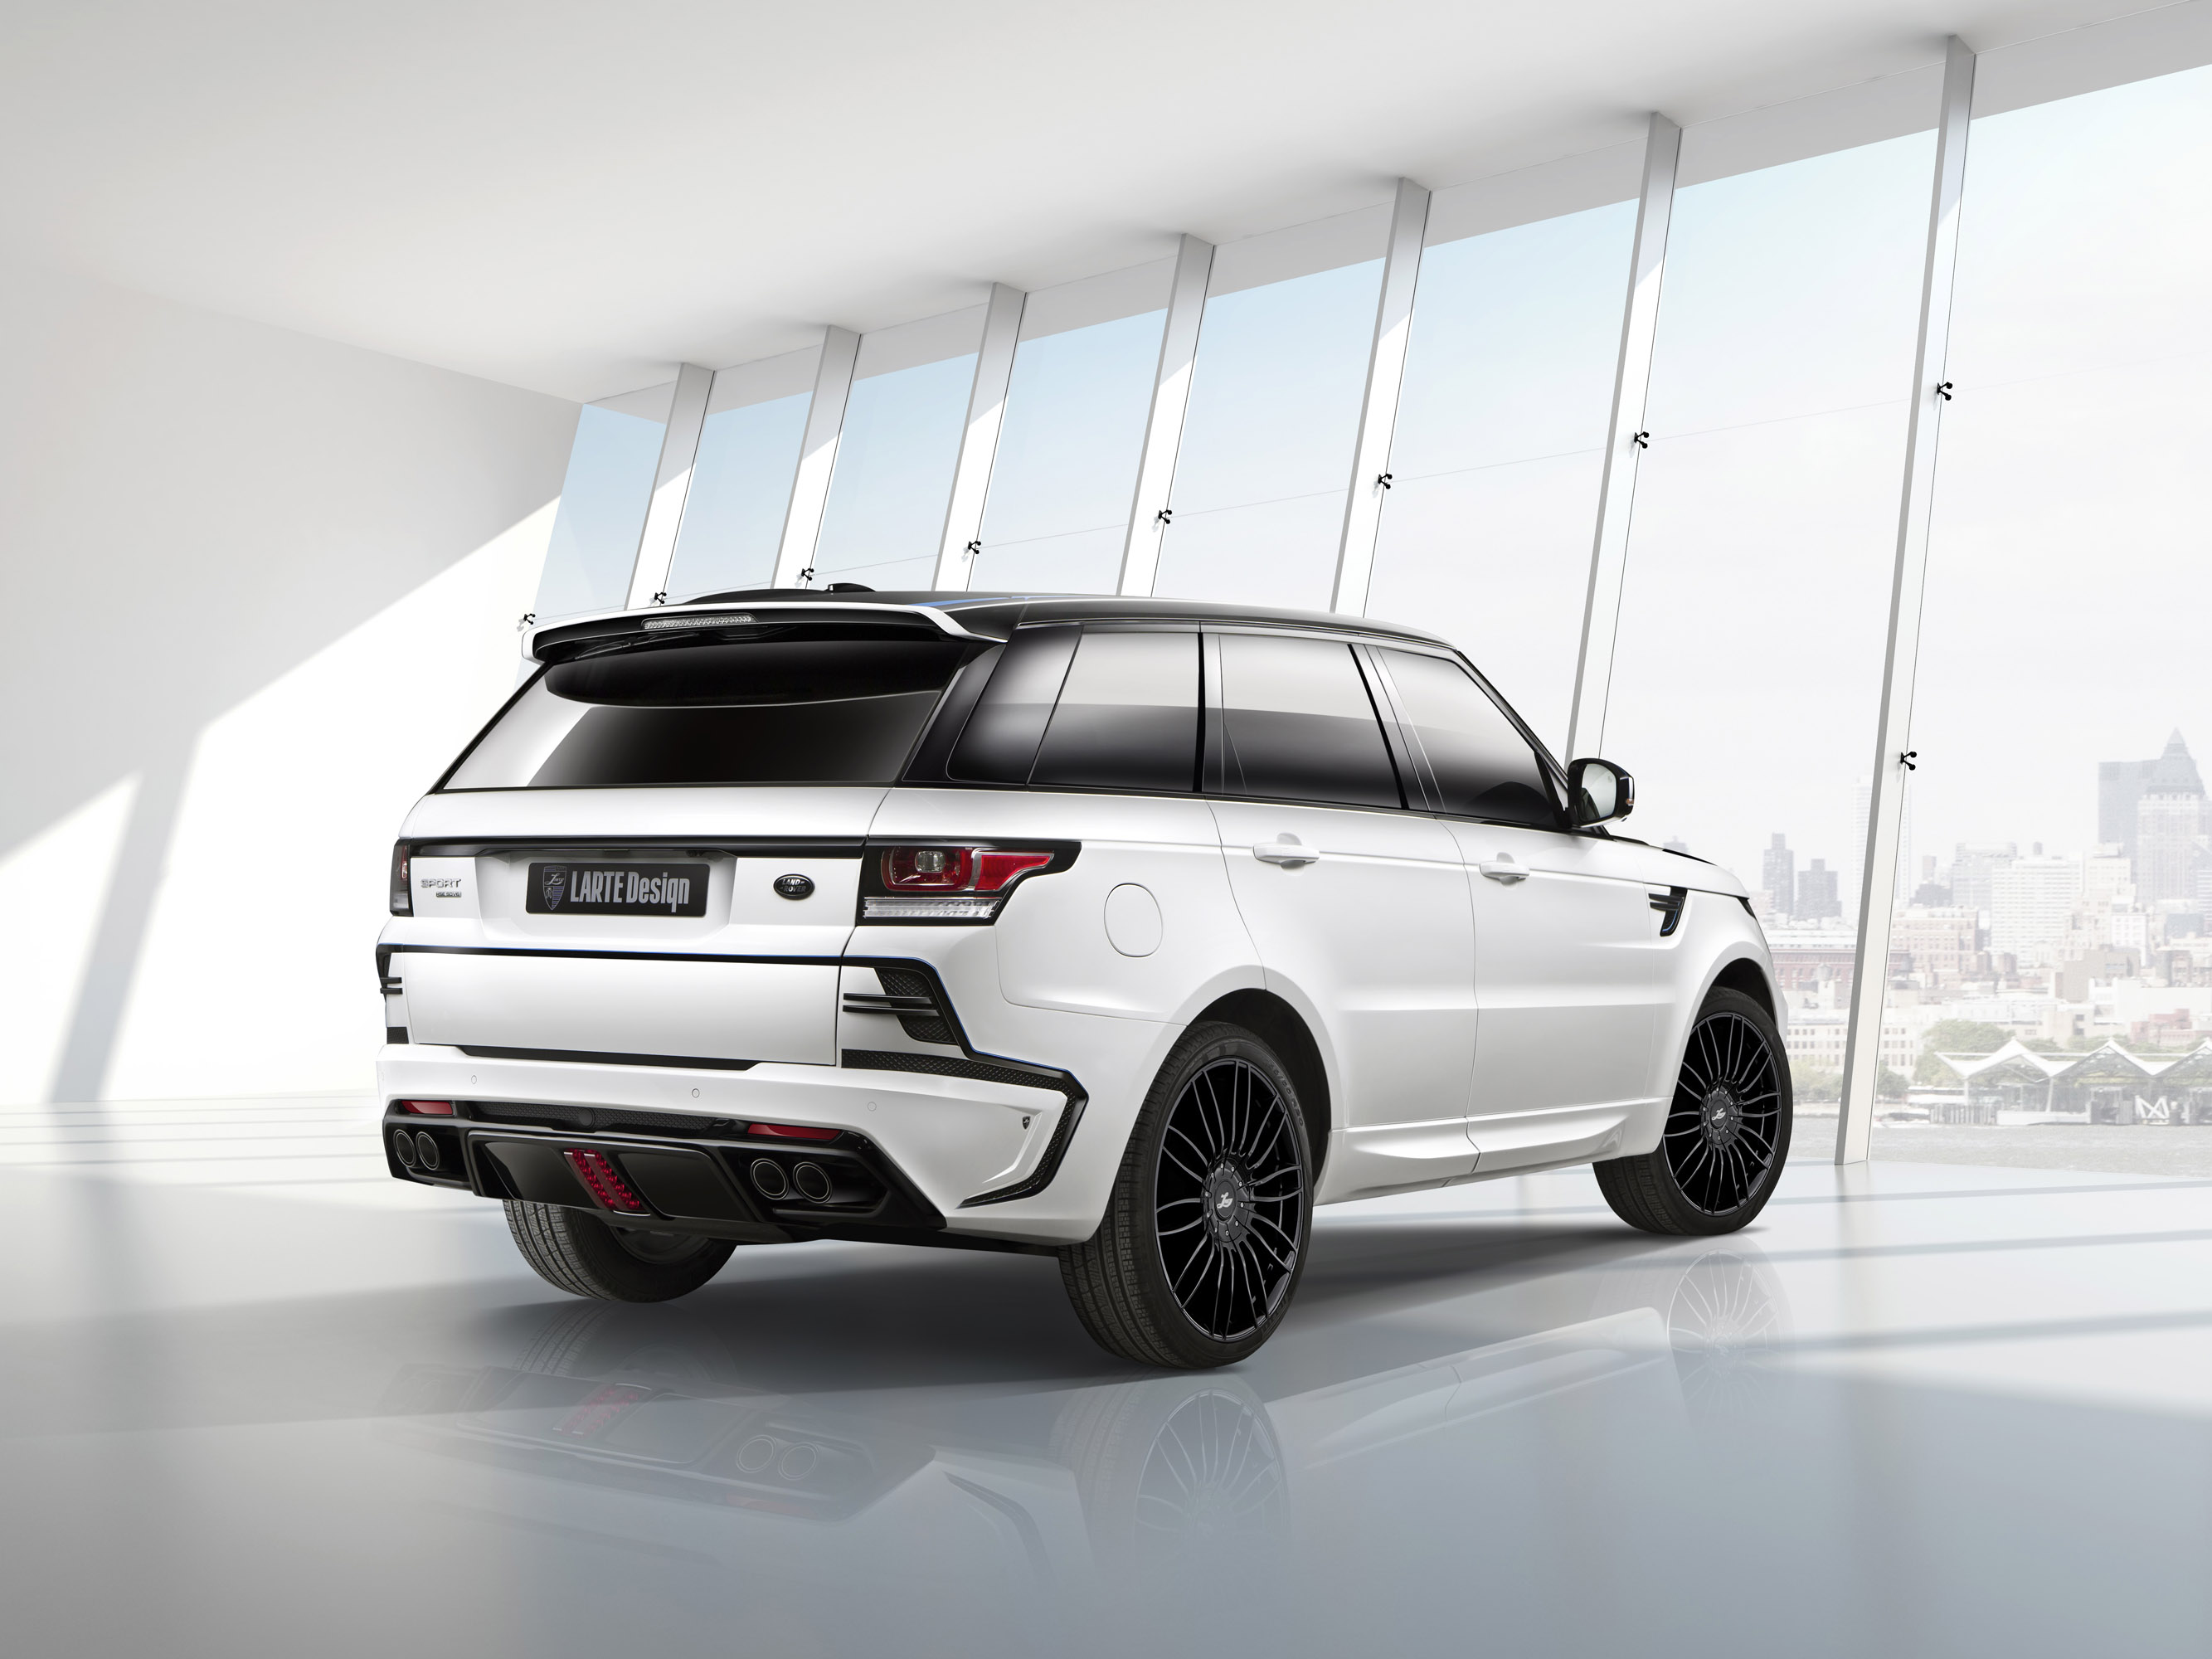 larte desing 39 s winner project on range rover sport. Black Bedroom Furniture Sets. Home Design Ideas